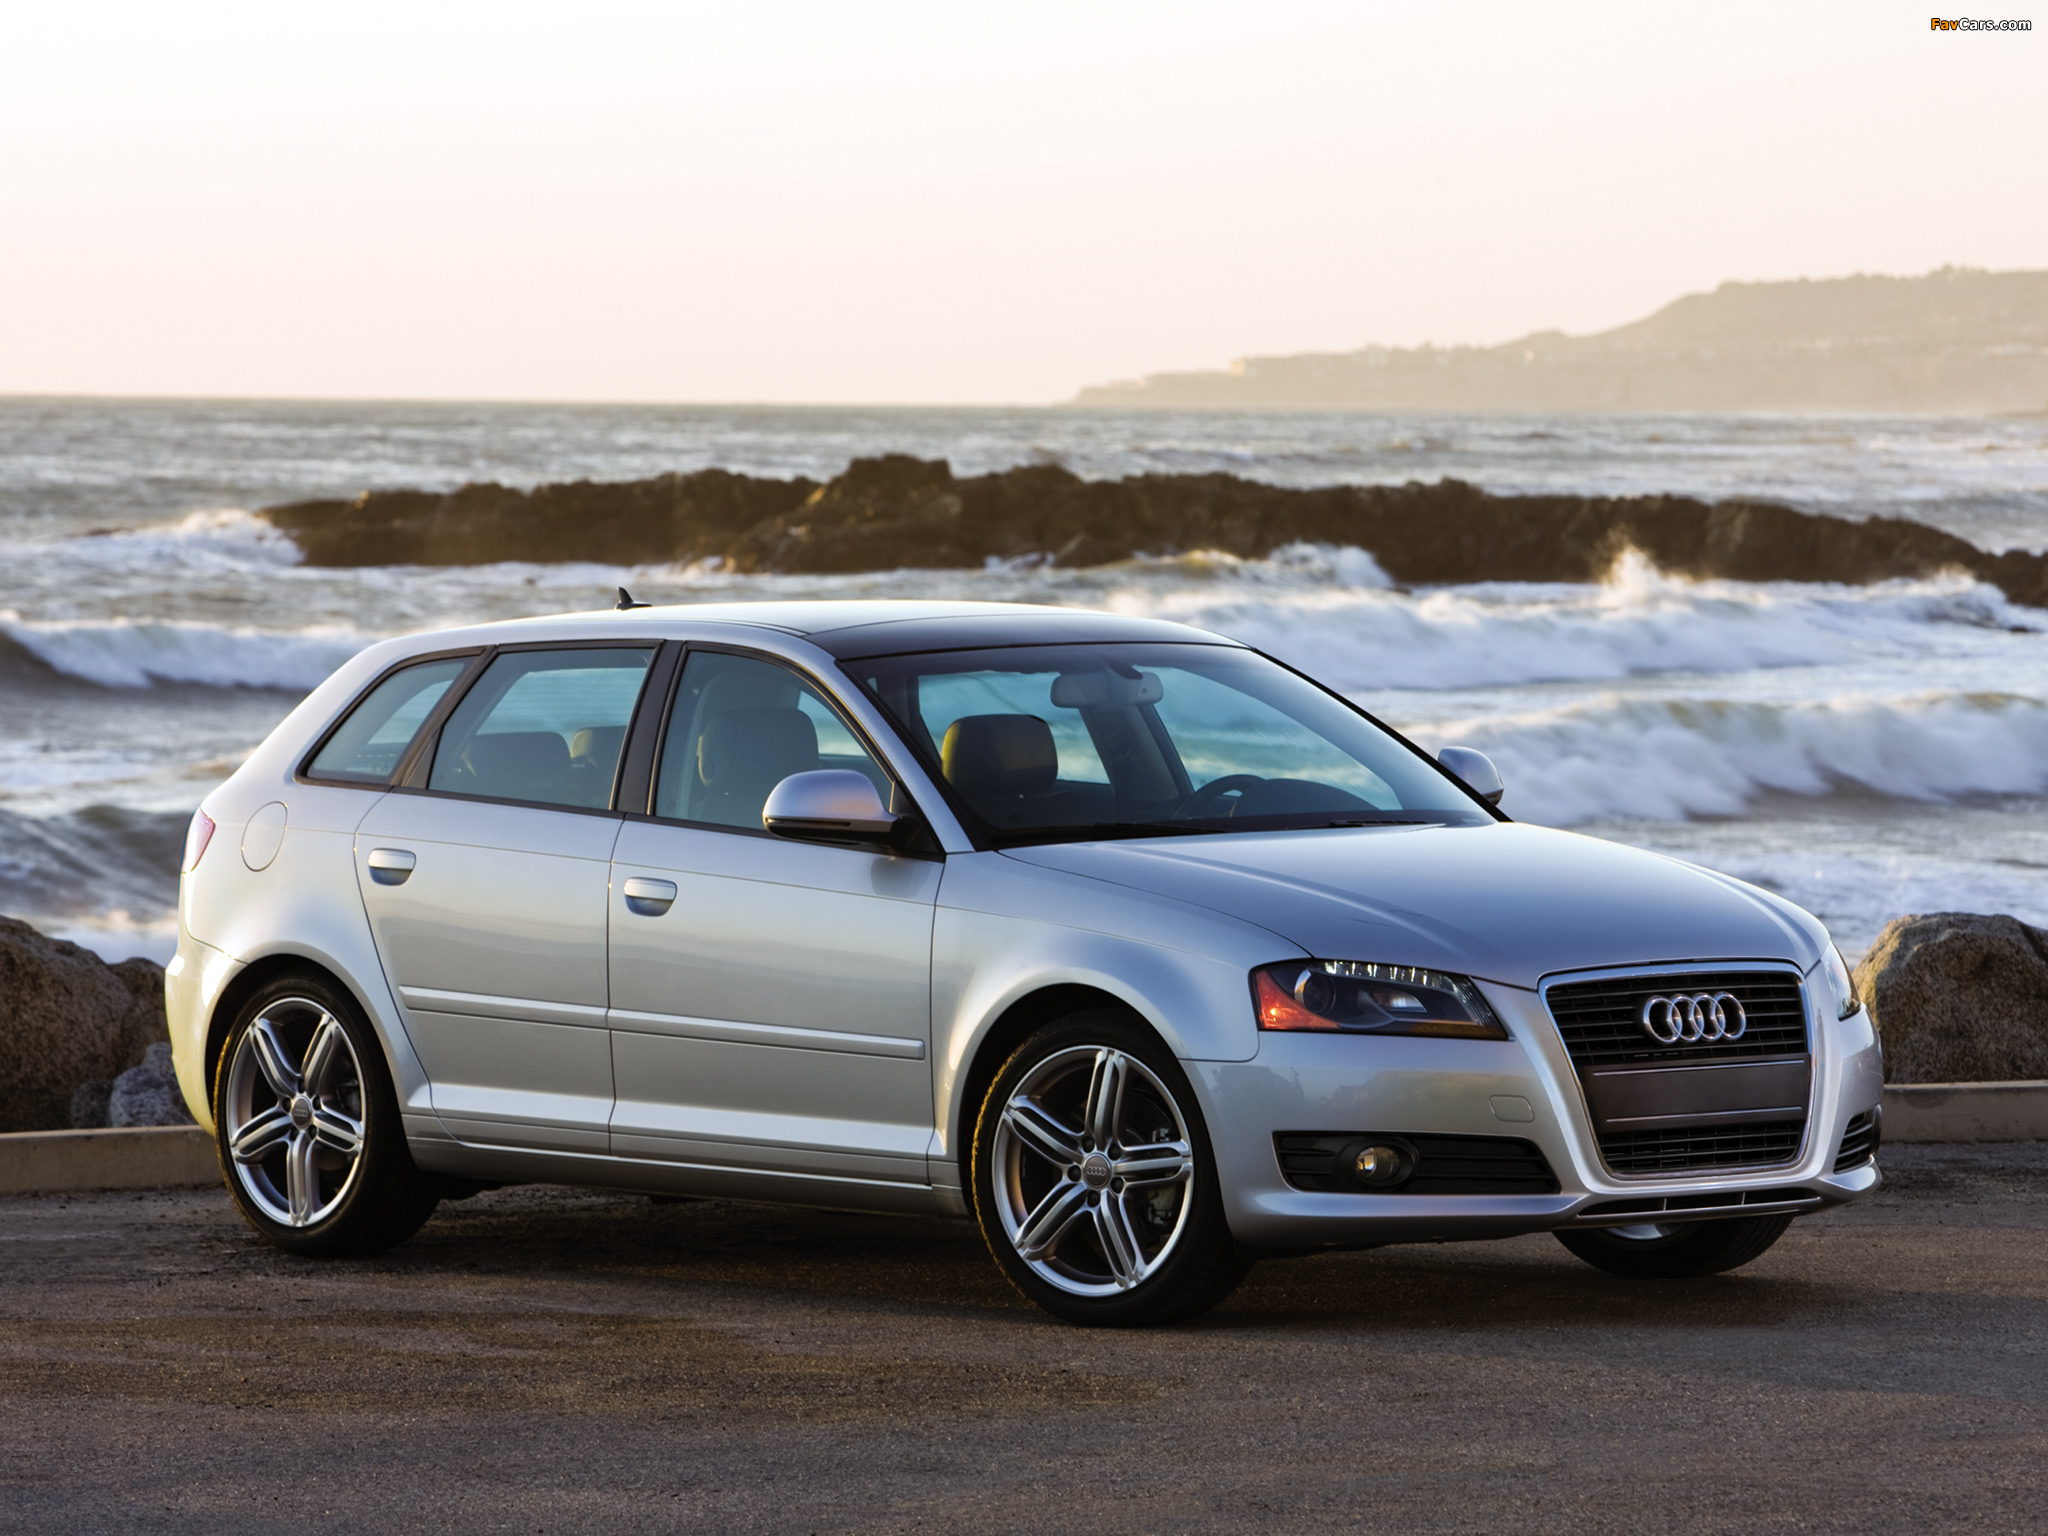 Audi a3 sportback 2 0t us spec 8pa 2008 2010 wallpapers for Dimensioni audi a3 sportback 2008